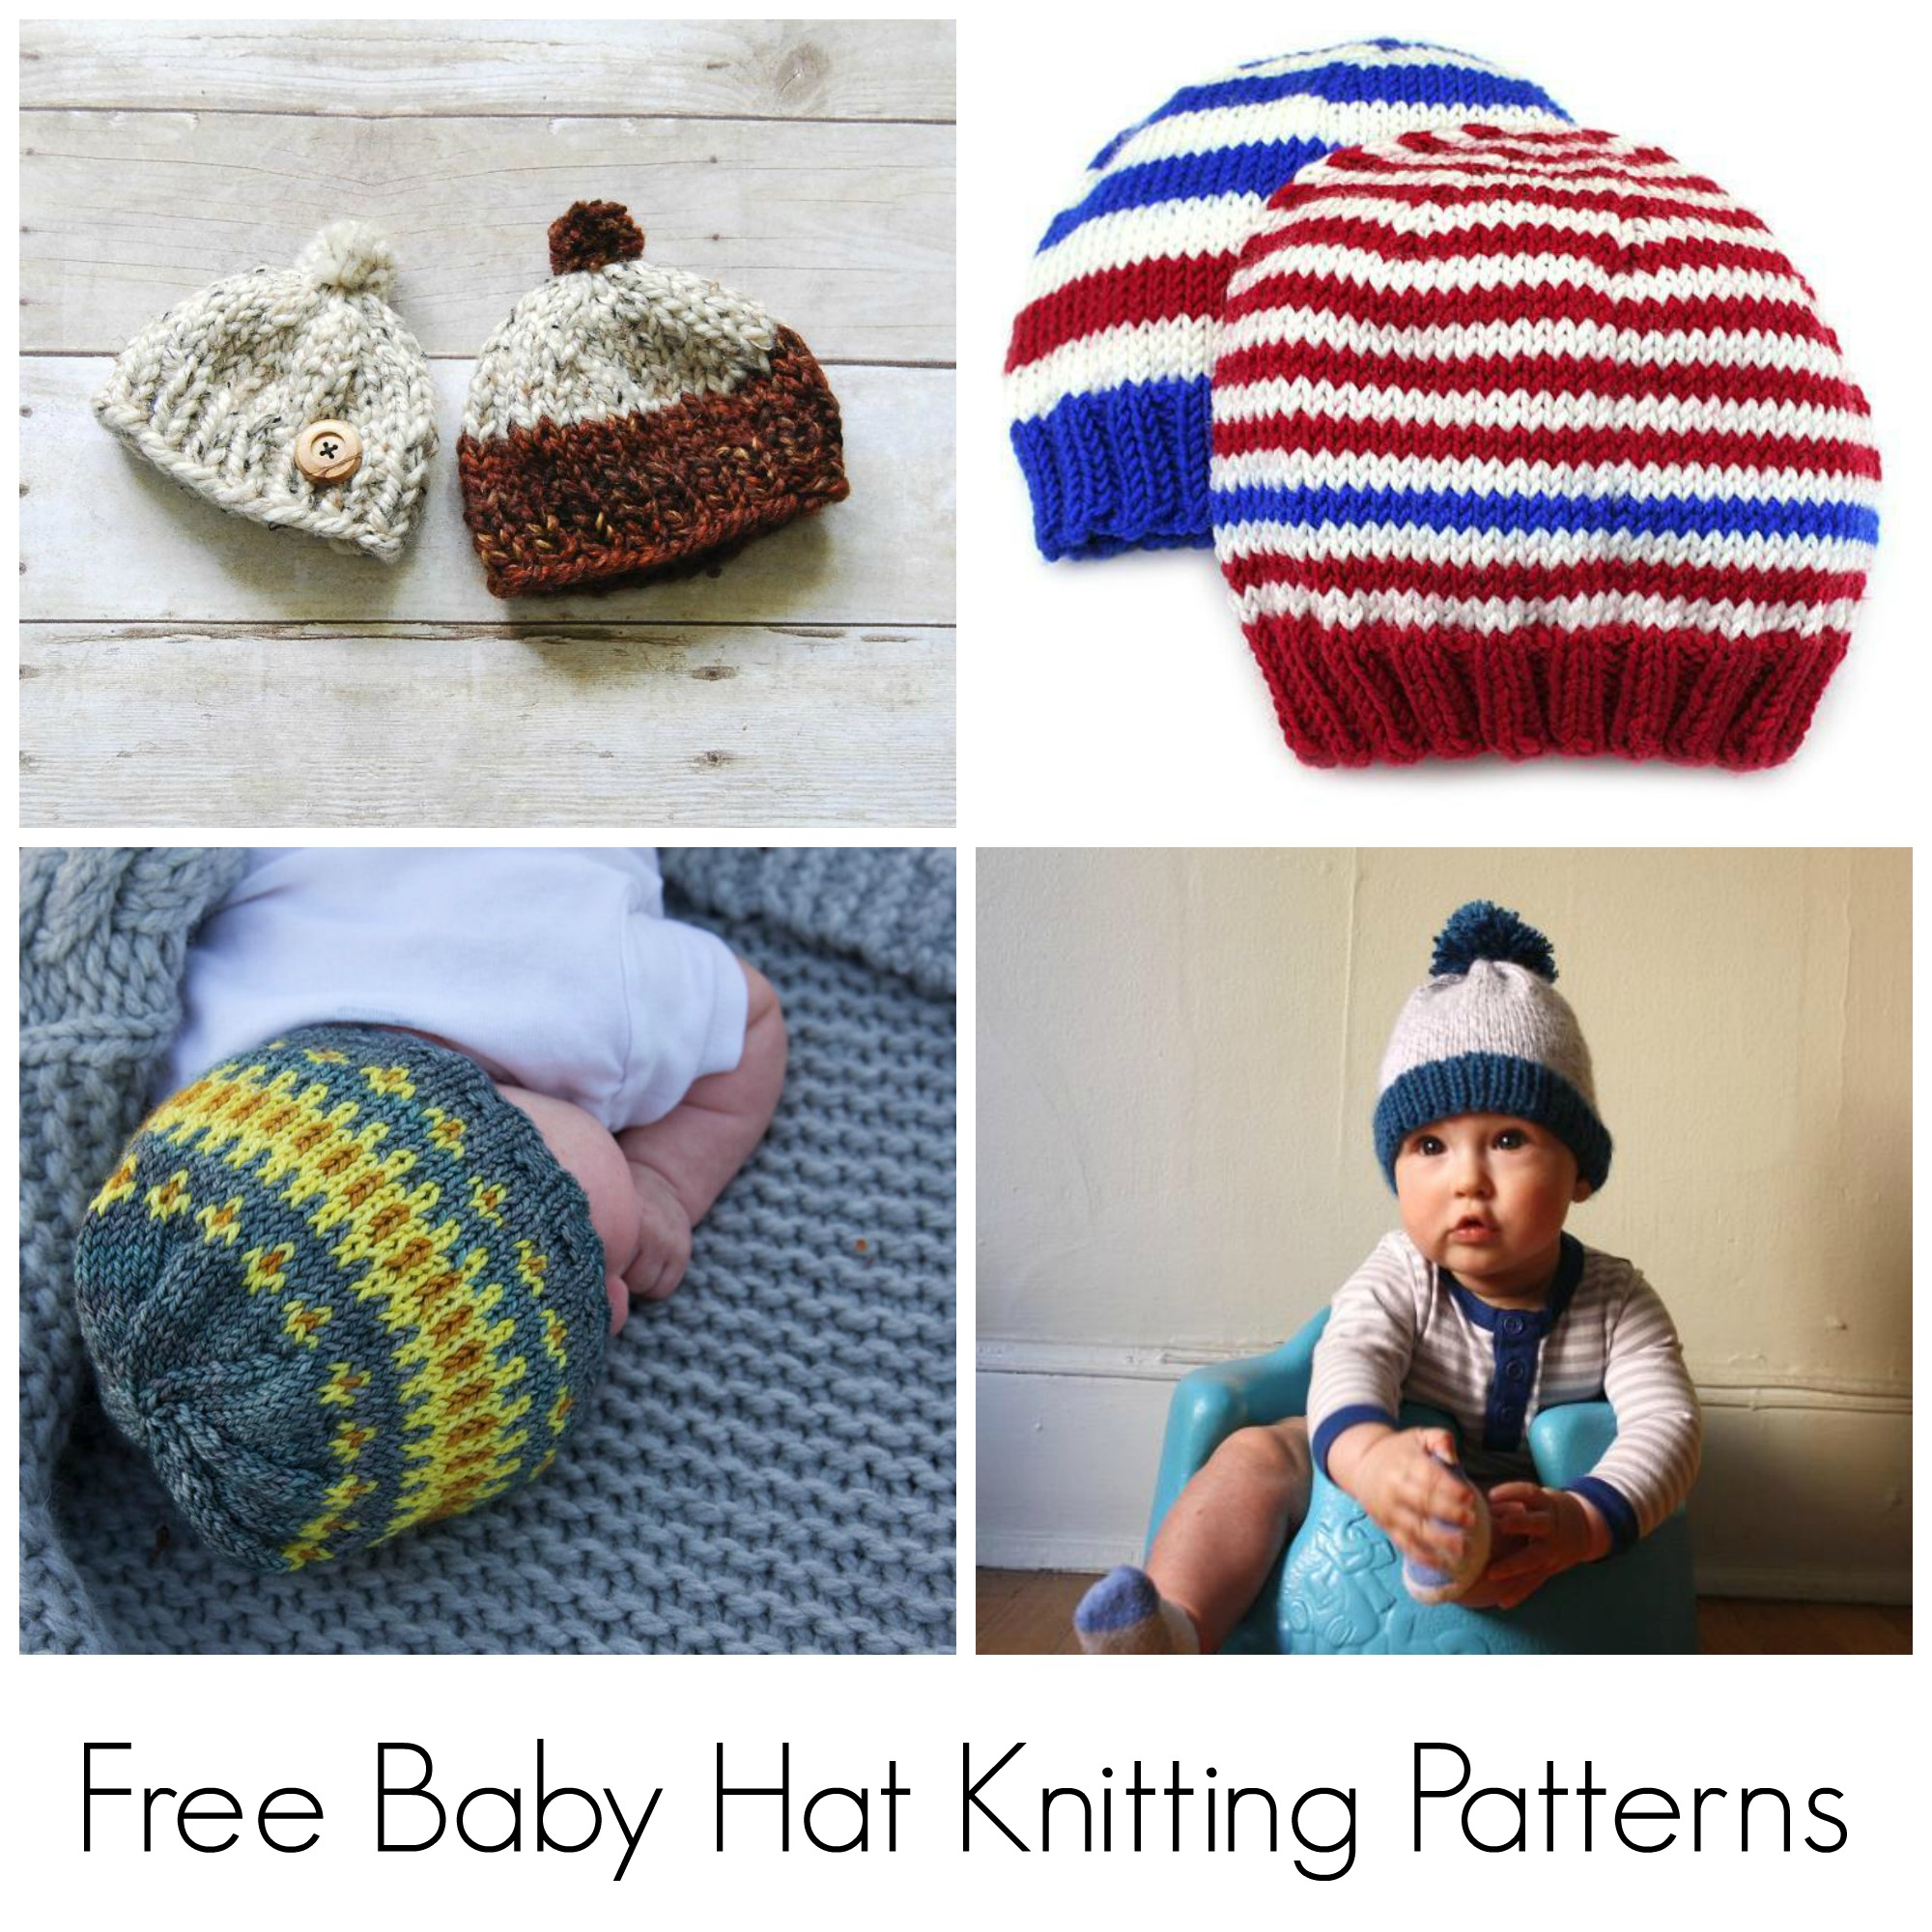 Bobble Hat Knitting Pattern Free 10 Free Knitting Patterns For Ba Hats On Craftsy